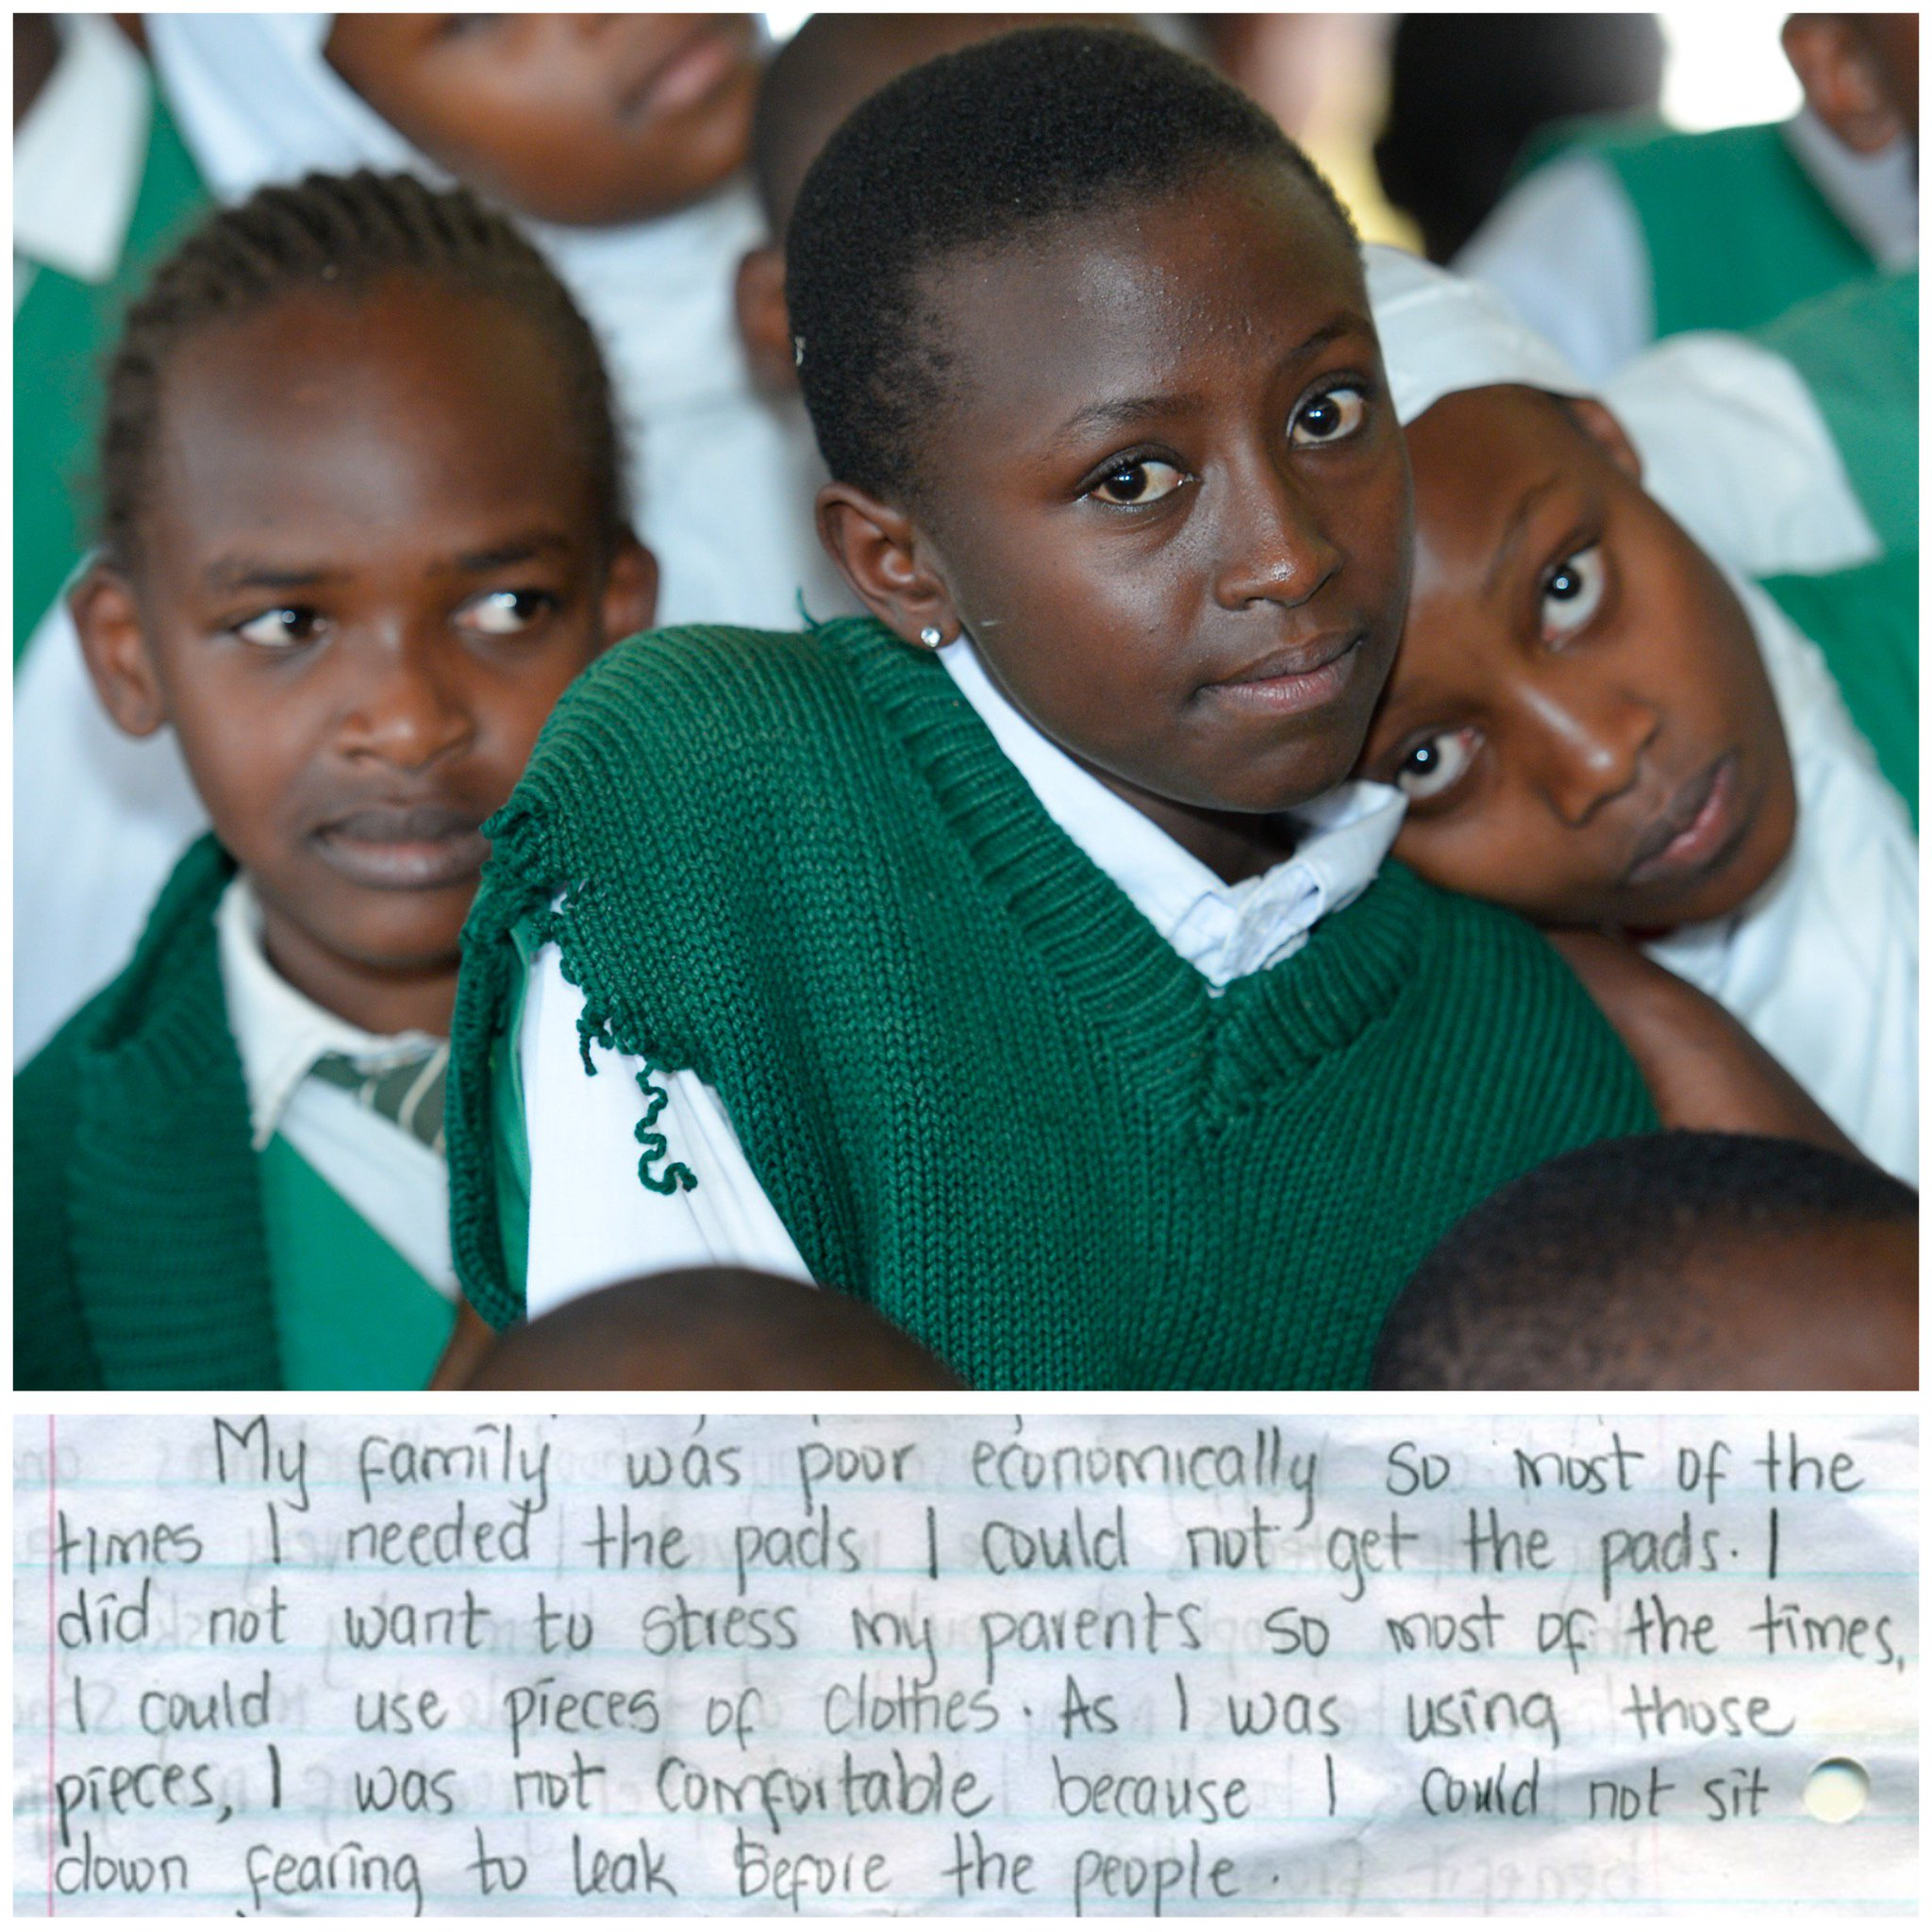 """A4: 40% of girls surveyed reported """"embarrassment"""" as a #menstruation-related factor that contributes to absenteeism... #bullying #EndSRGBV https://t.co/YhiotW9aR7"""